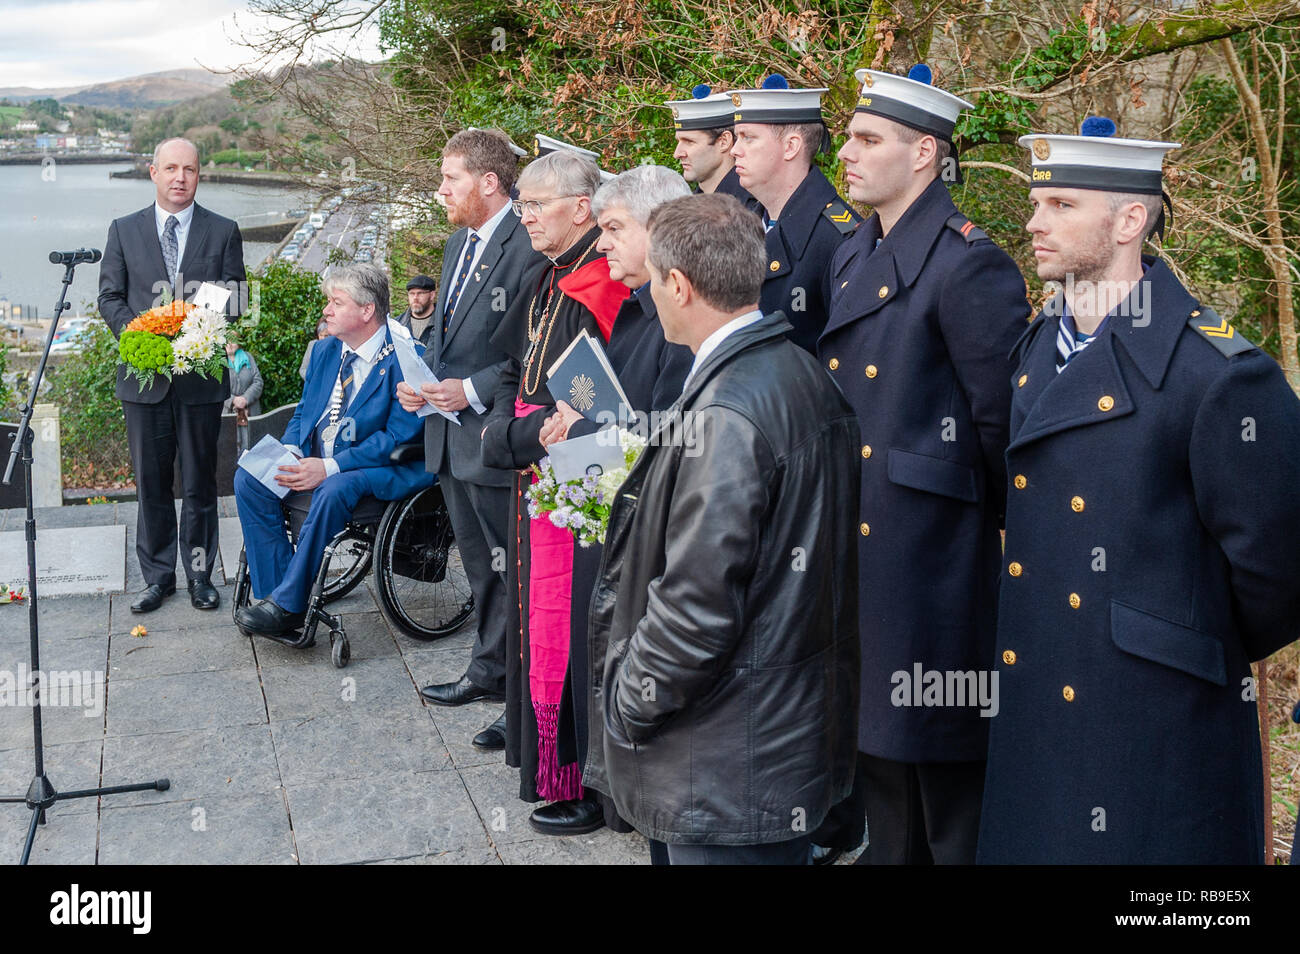 Bantry, West Cork, Ireland. 8th Jan, 2019. On the 40th Anniversary of the Whiddy Island disaster, in which the French oil tanker Betelgeuse exploded killing 50, a huge crowd attended the formalities in Abbey Graveyard, Bantry. Dignitaries and the Irish Navy stand at the memorial.  Credit: Andy Gibson/Alamy Live News. - Stock Image